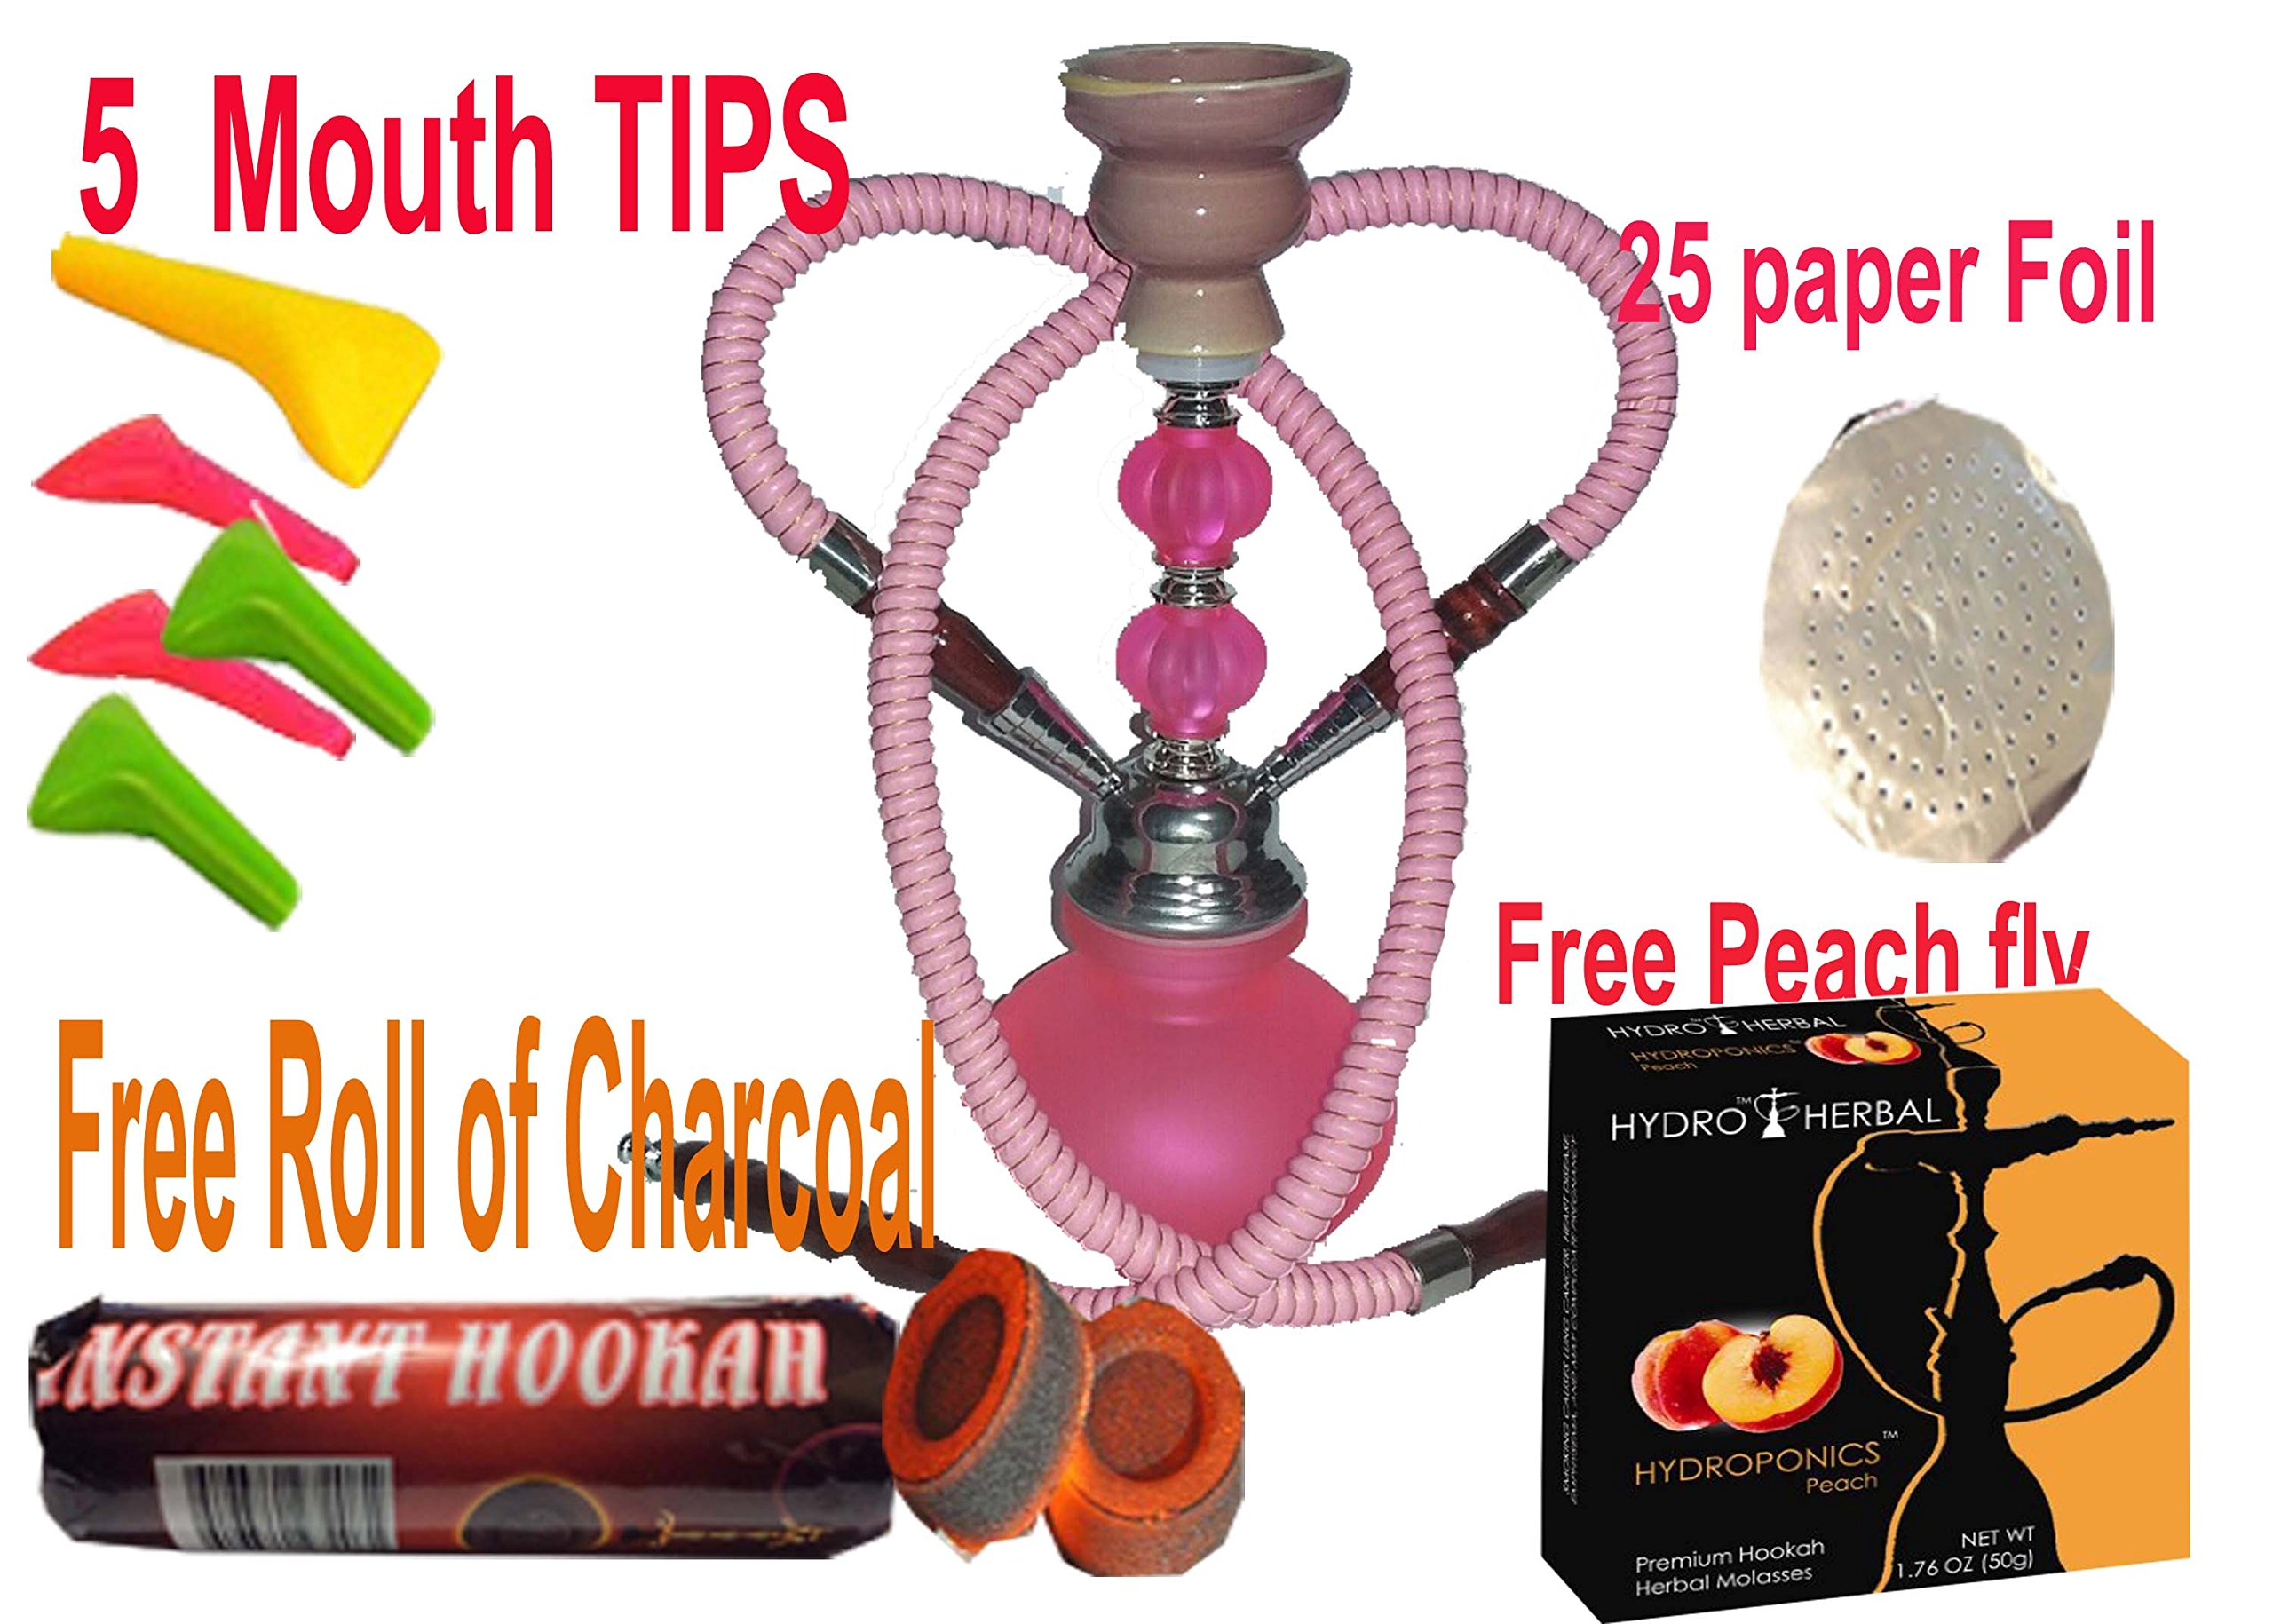 2 Hose Hookah Neon, Two Styles to Choose from 12'' Height, Cute Shape Comes with 10 Instant Charcoal, 5 Mouth Tips, 25 foil Paper- Free Peach Flavor (Style 1, Pink)